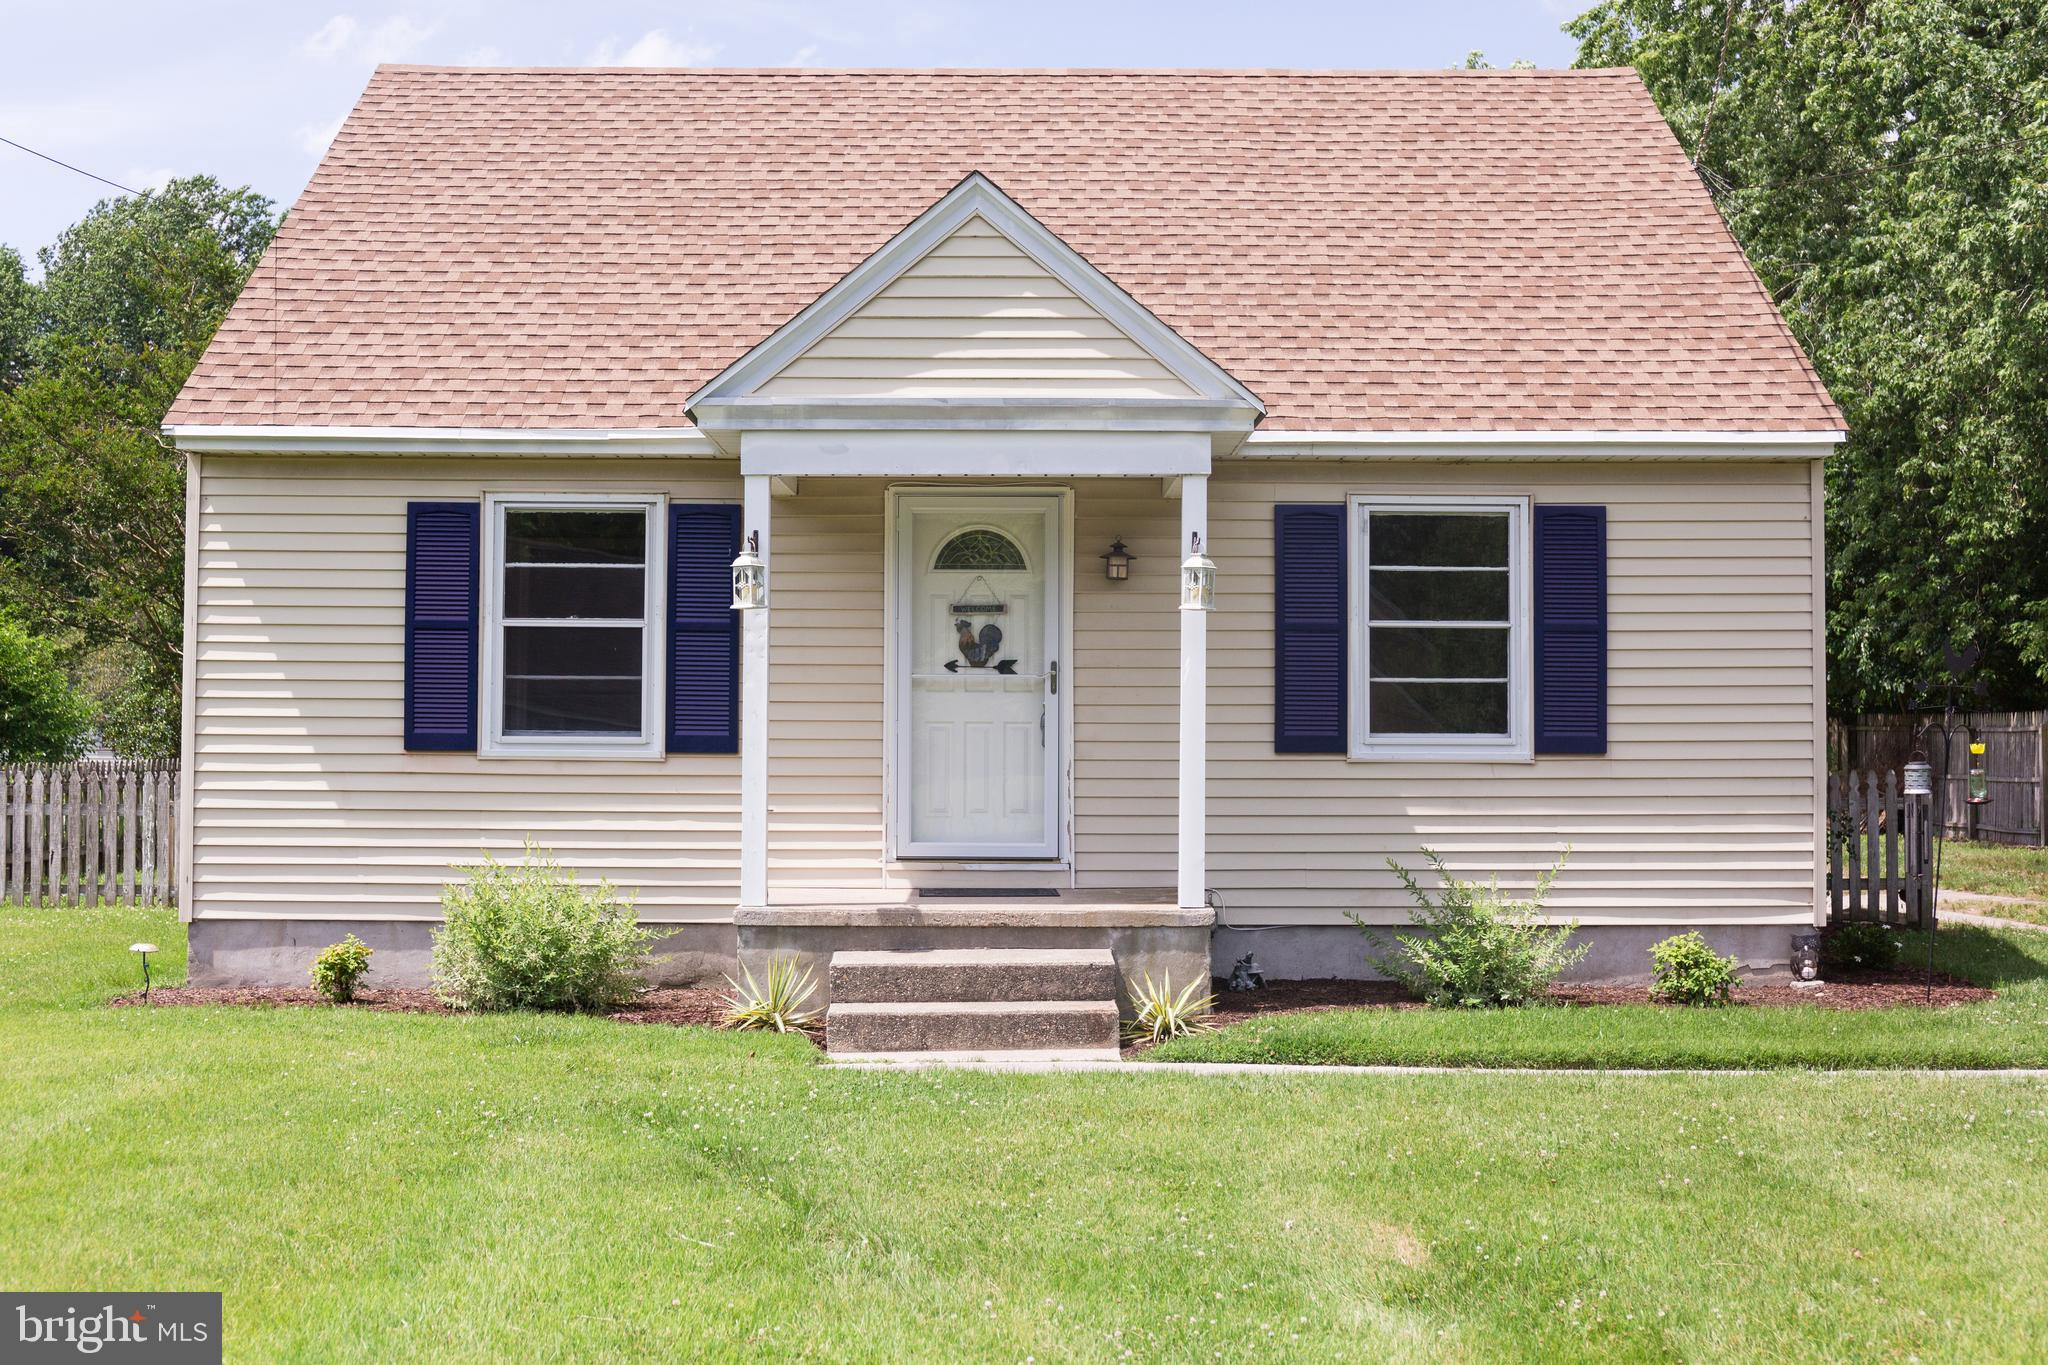 4 BEDROOM CAPE COD WITH 2 CAR GARAGE.  UPDATED KITCHEN, STAINLESS STEEL APPLIANCES,    SOLID SURFACE